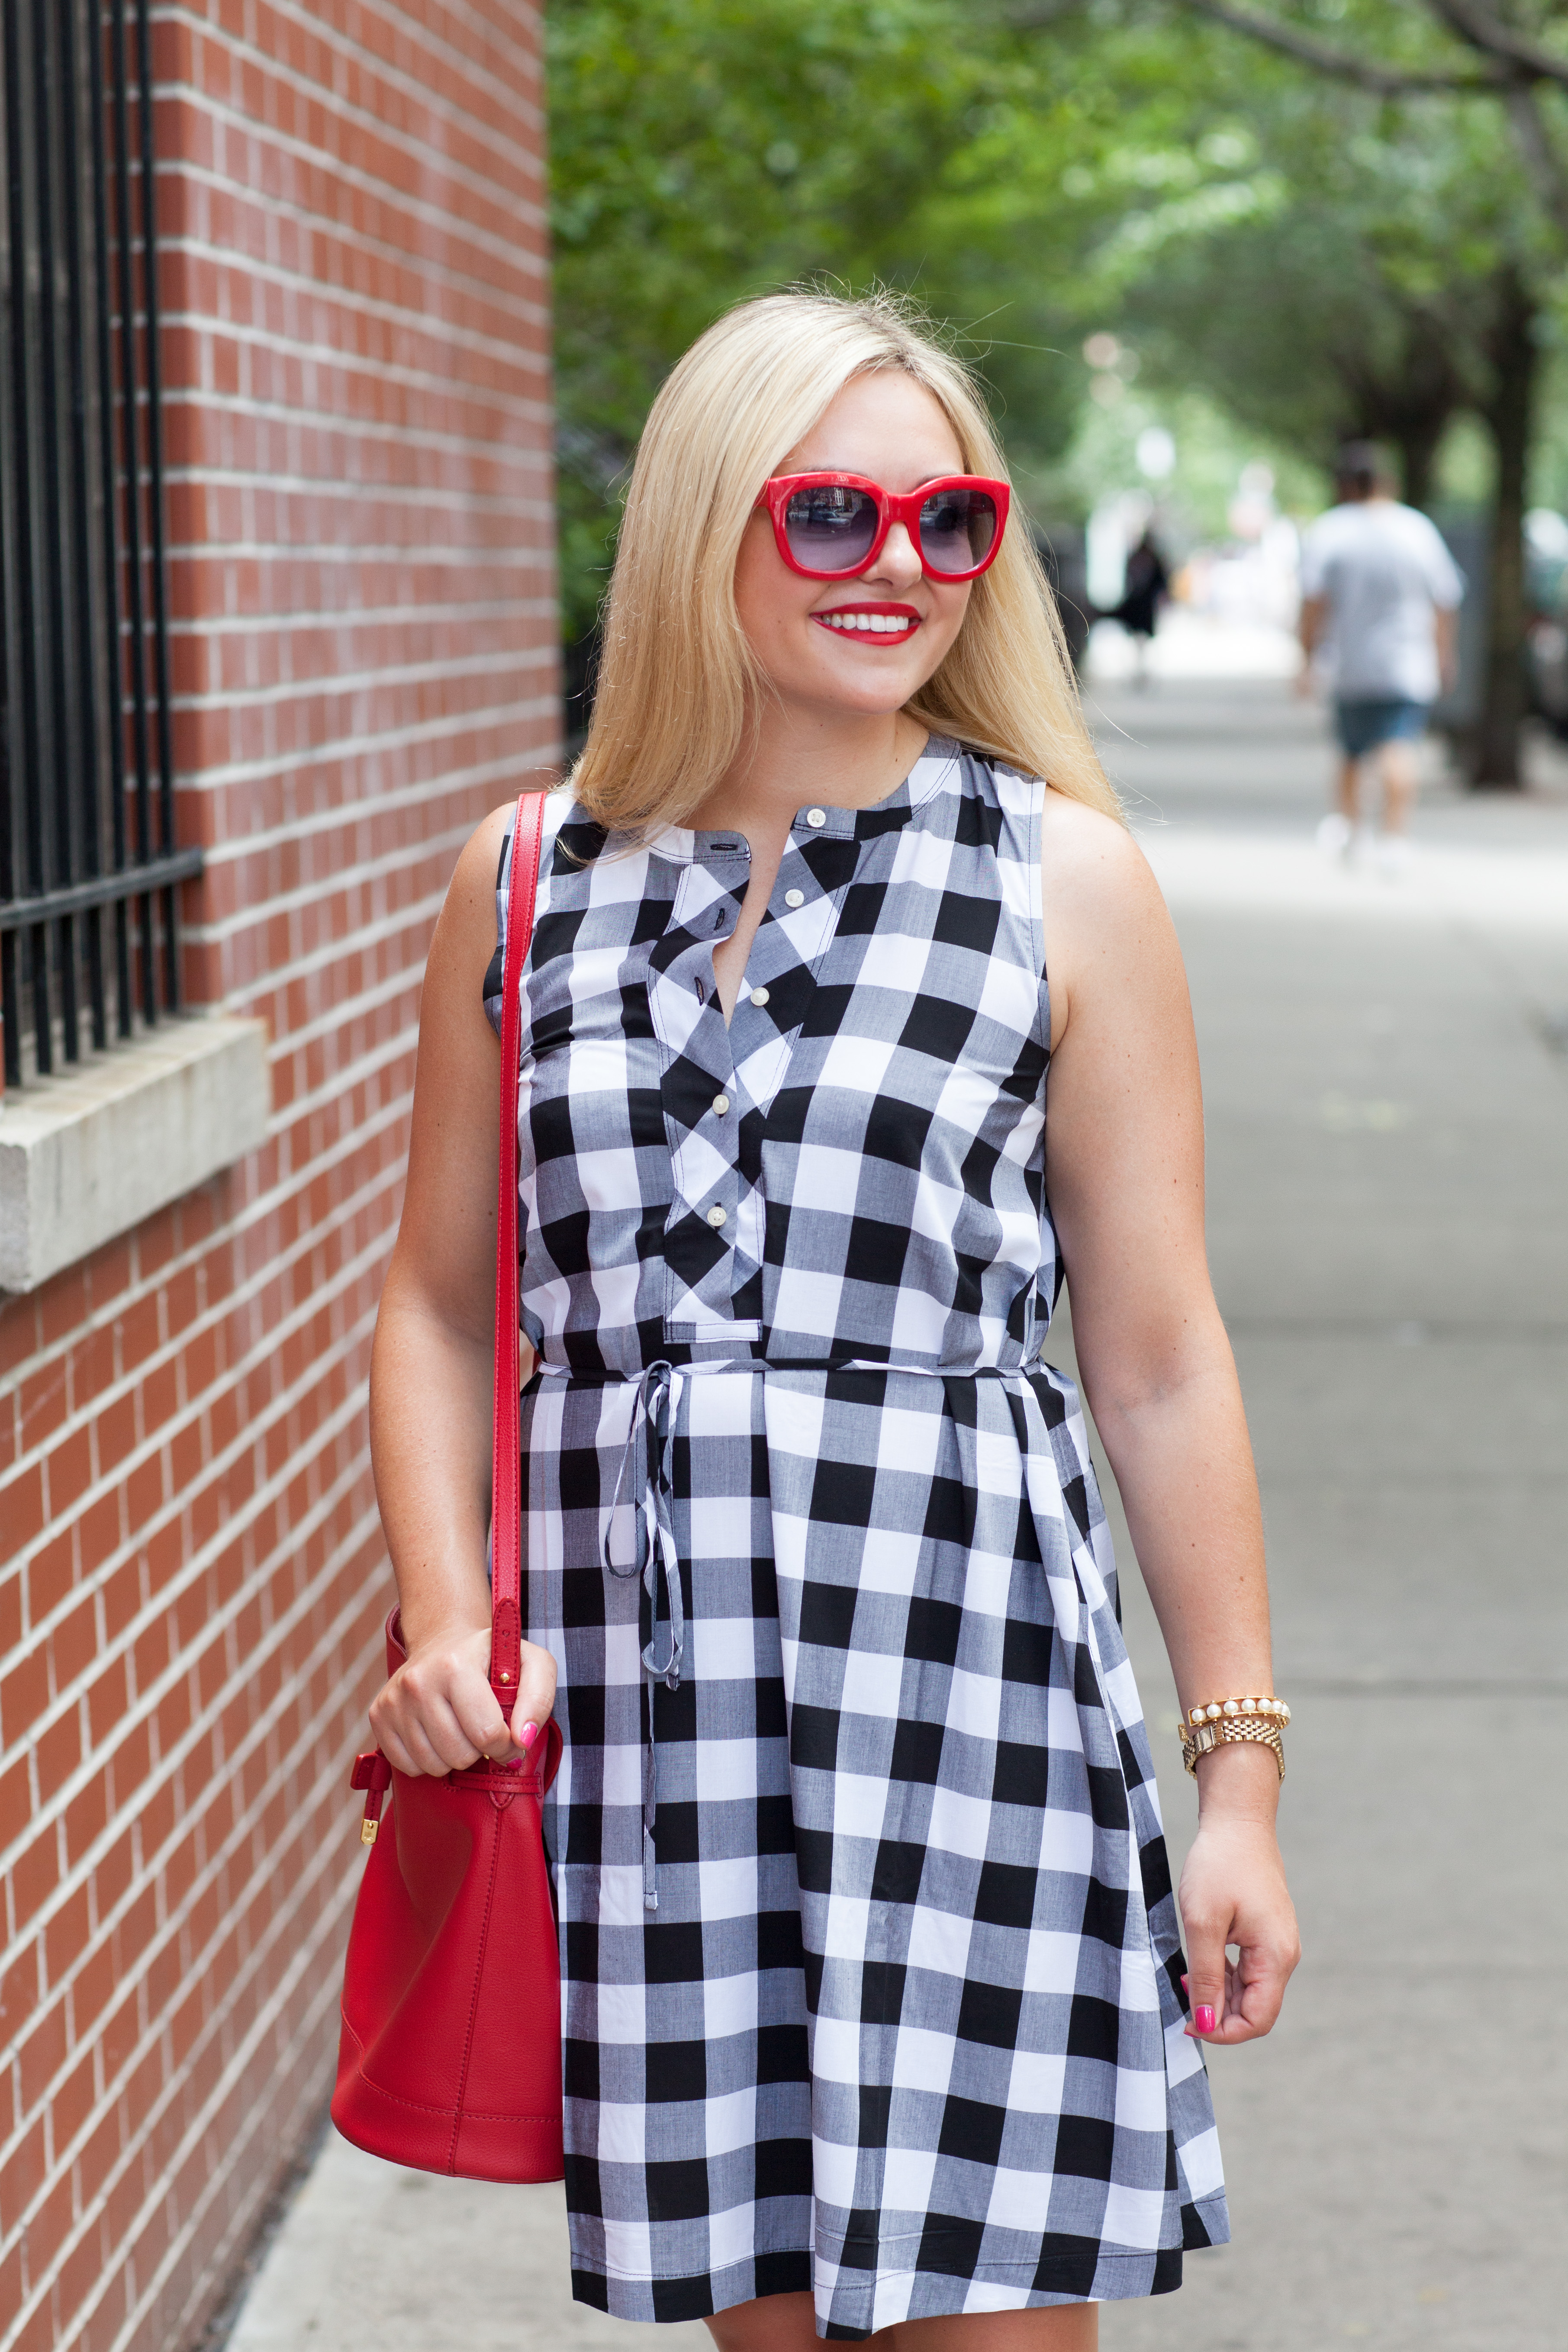 You searched for: black and white checkered dress! Etsy is the home to thousands of handmade, vintage, and one-of-a-kind products and gifts related to your search. No matter what you're looking for or where you are in the world, our global marketplace of sellers can help you find unique and affordable options. Let's get started!